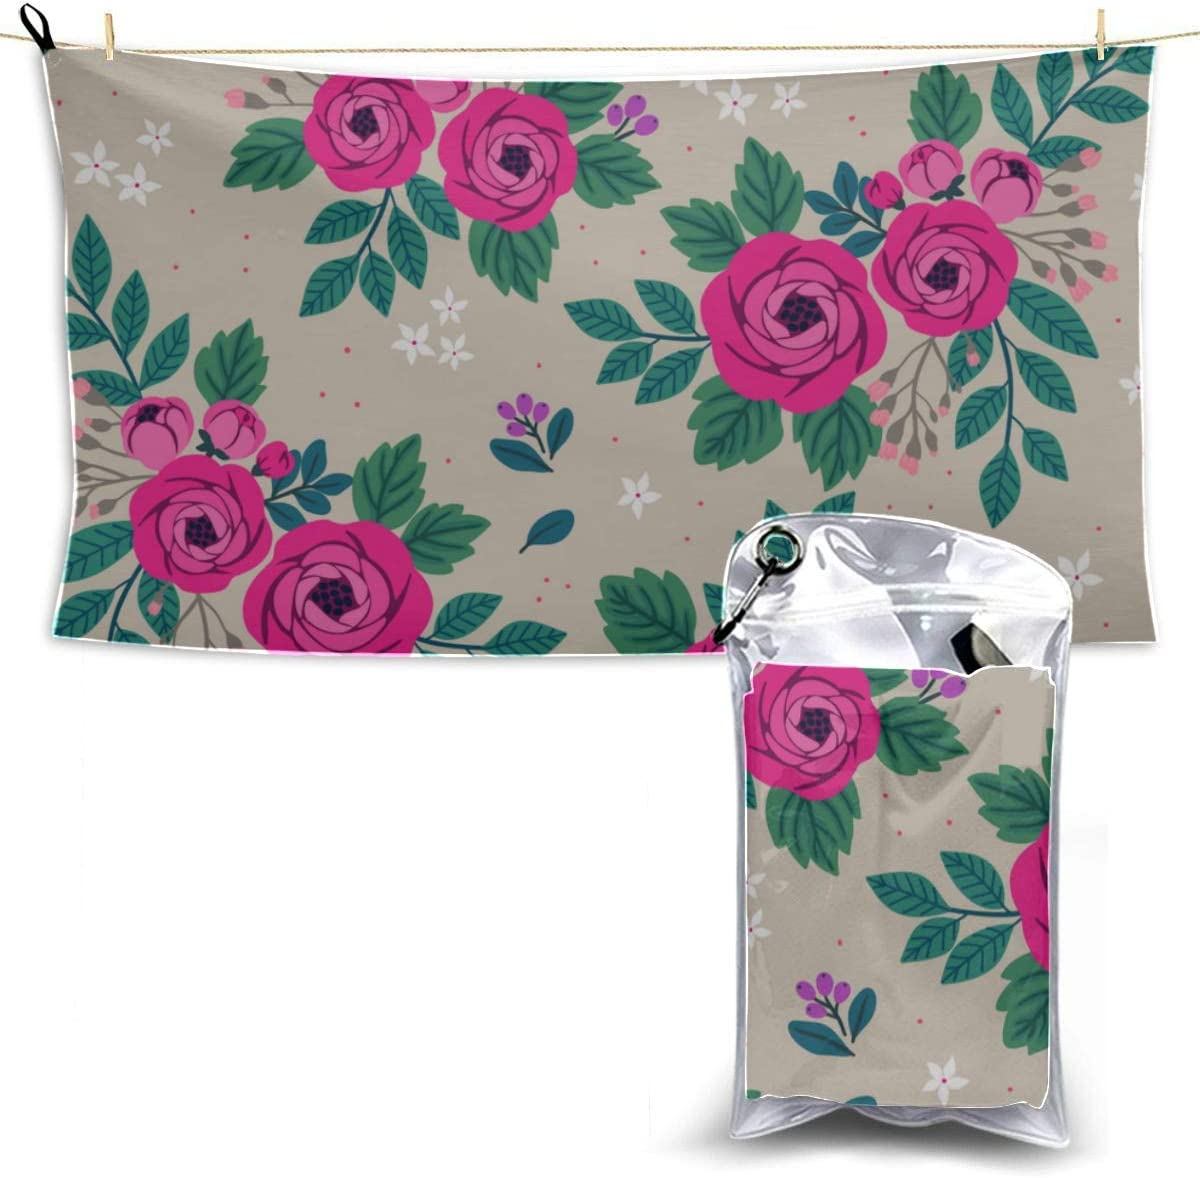 B07Y845X3Y VNASKL Quick Dry Lightweight Towels Quick Dry Microfiber Compact Absorbent Sporting Towel with Carrying Bag Rose Red Retro Romatic Spring Peony Mens Beach Towell 61Wcnjg3s5L